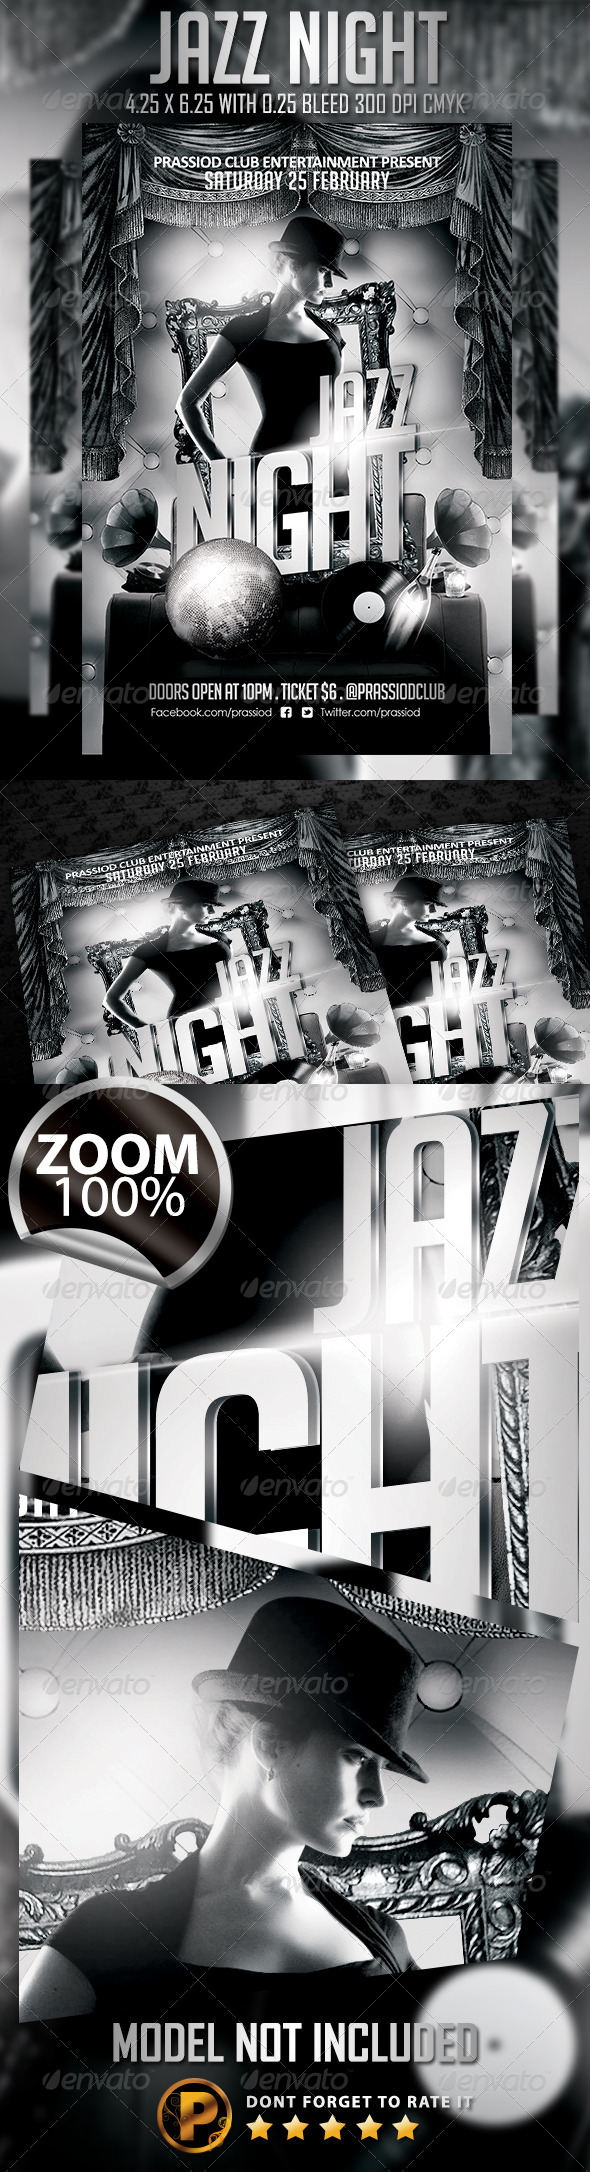 Jazz Night Flyer Template - Clubs & Parties Events